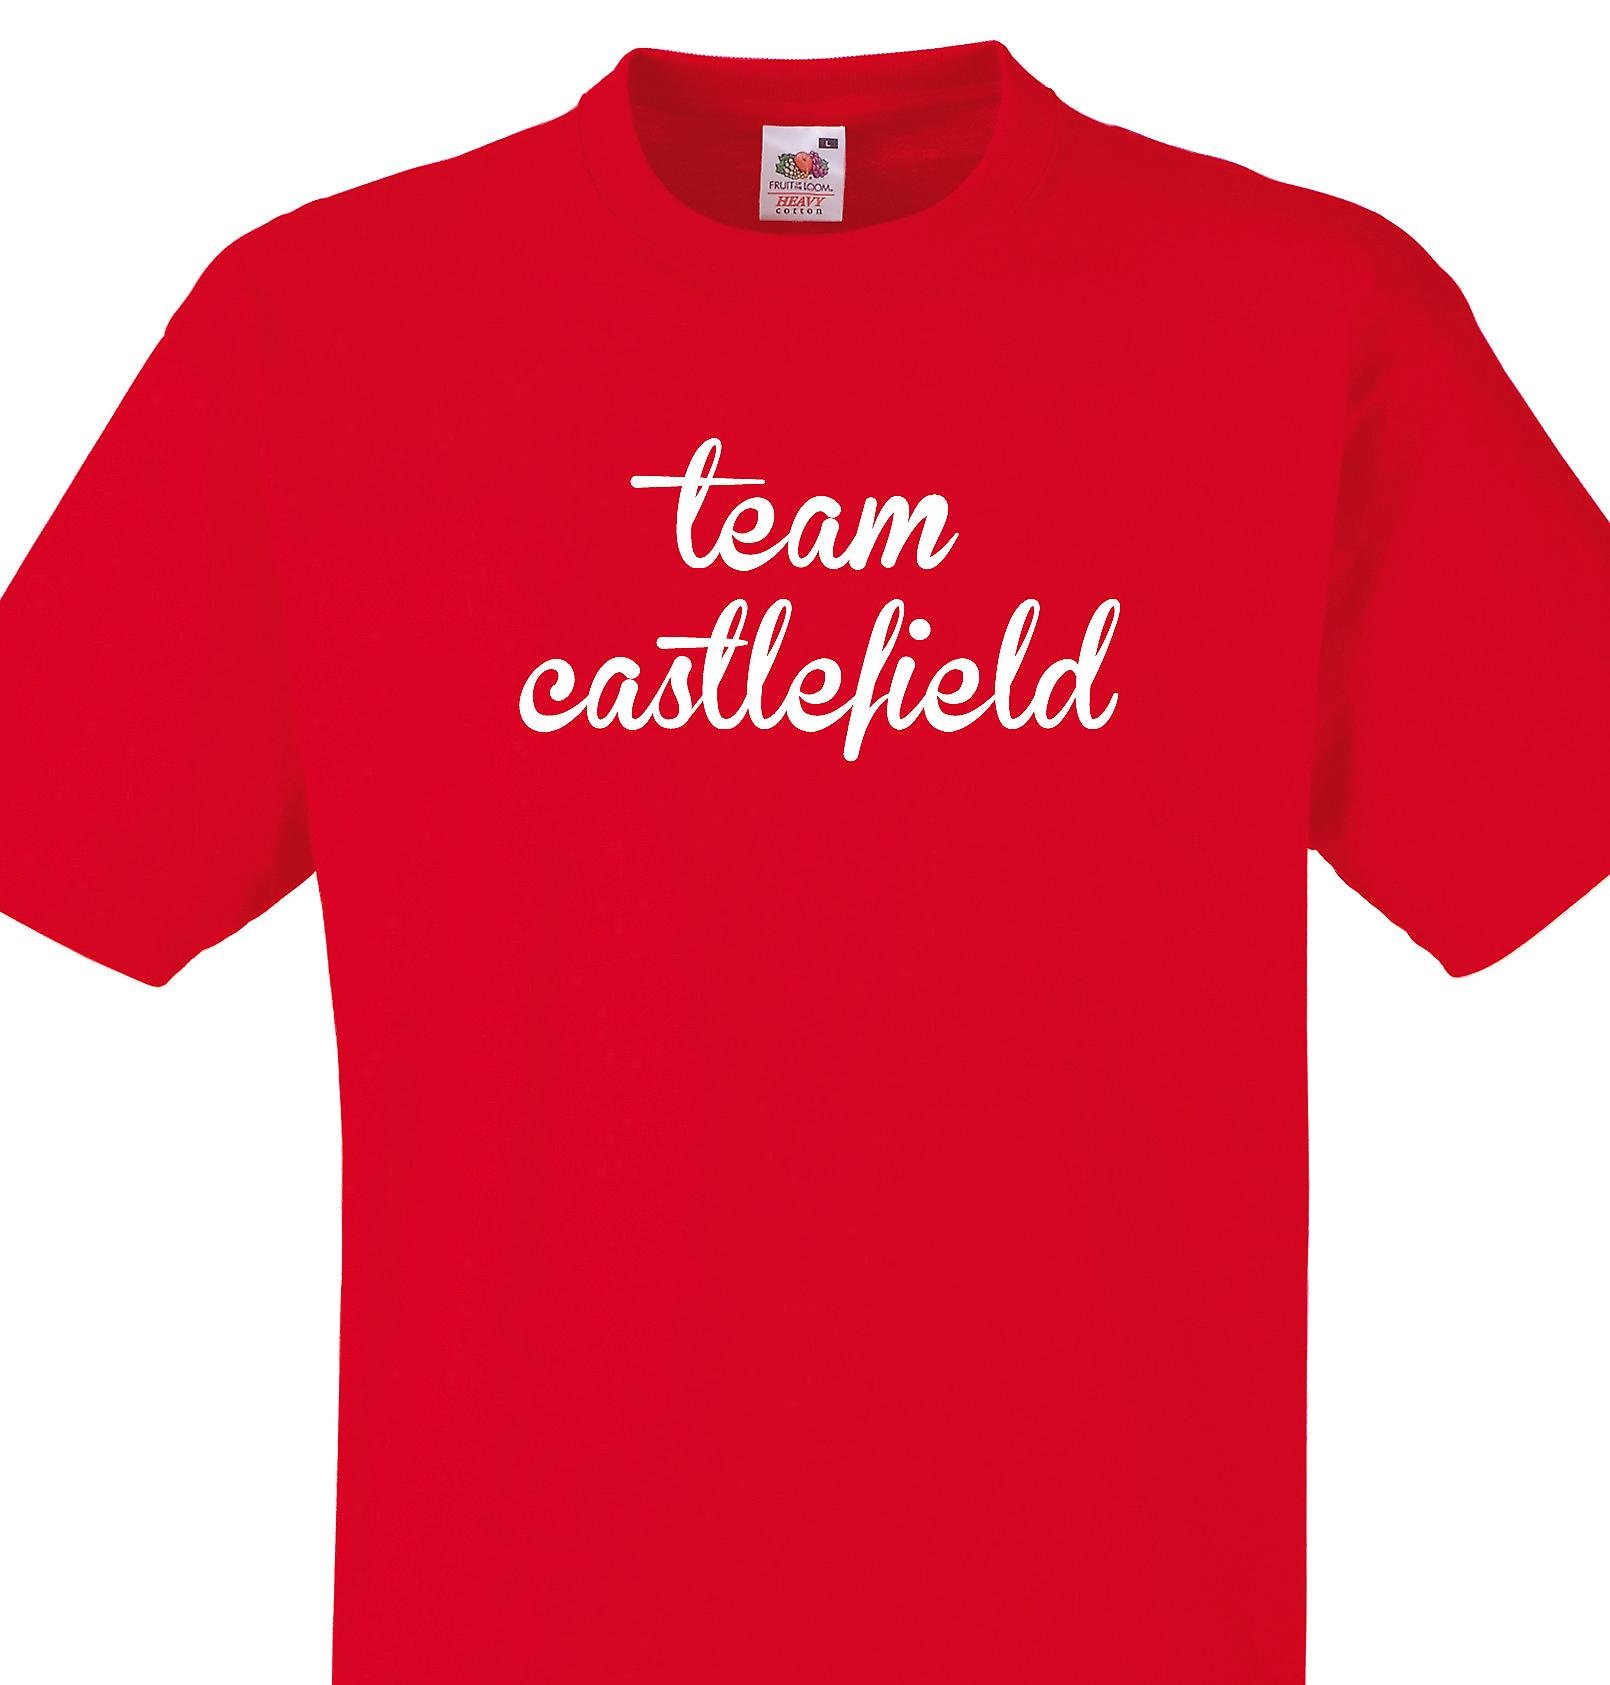 Team Castlefield Red T shirt